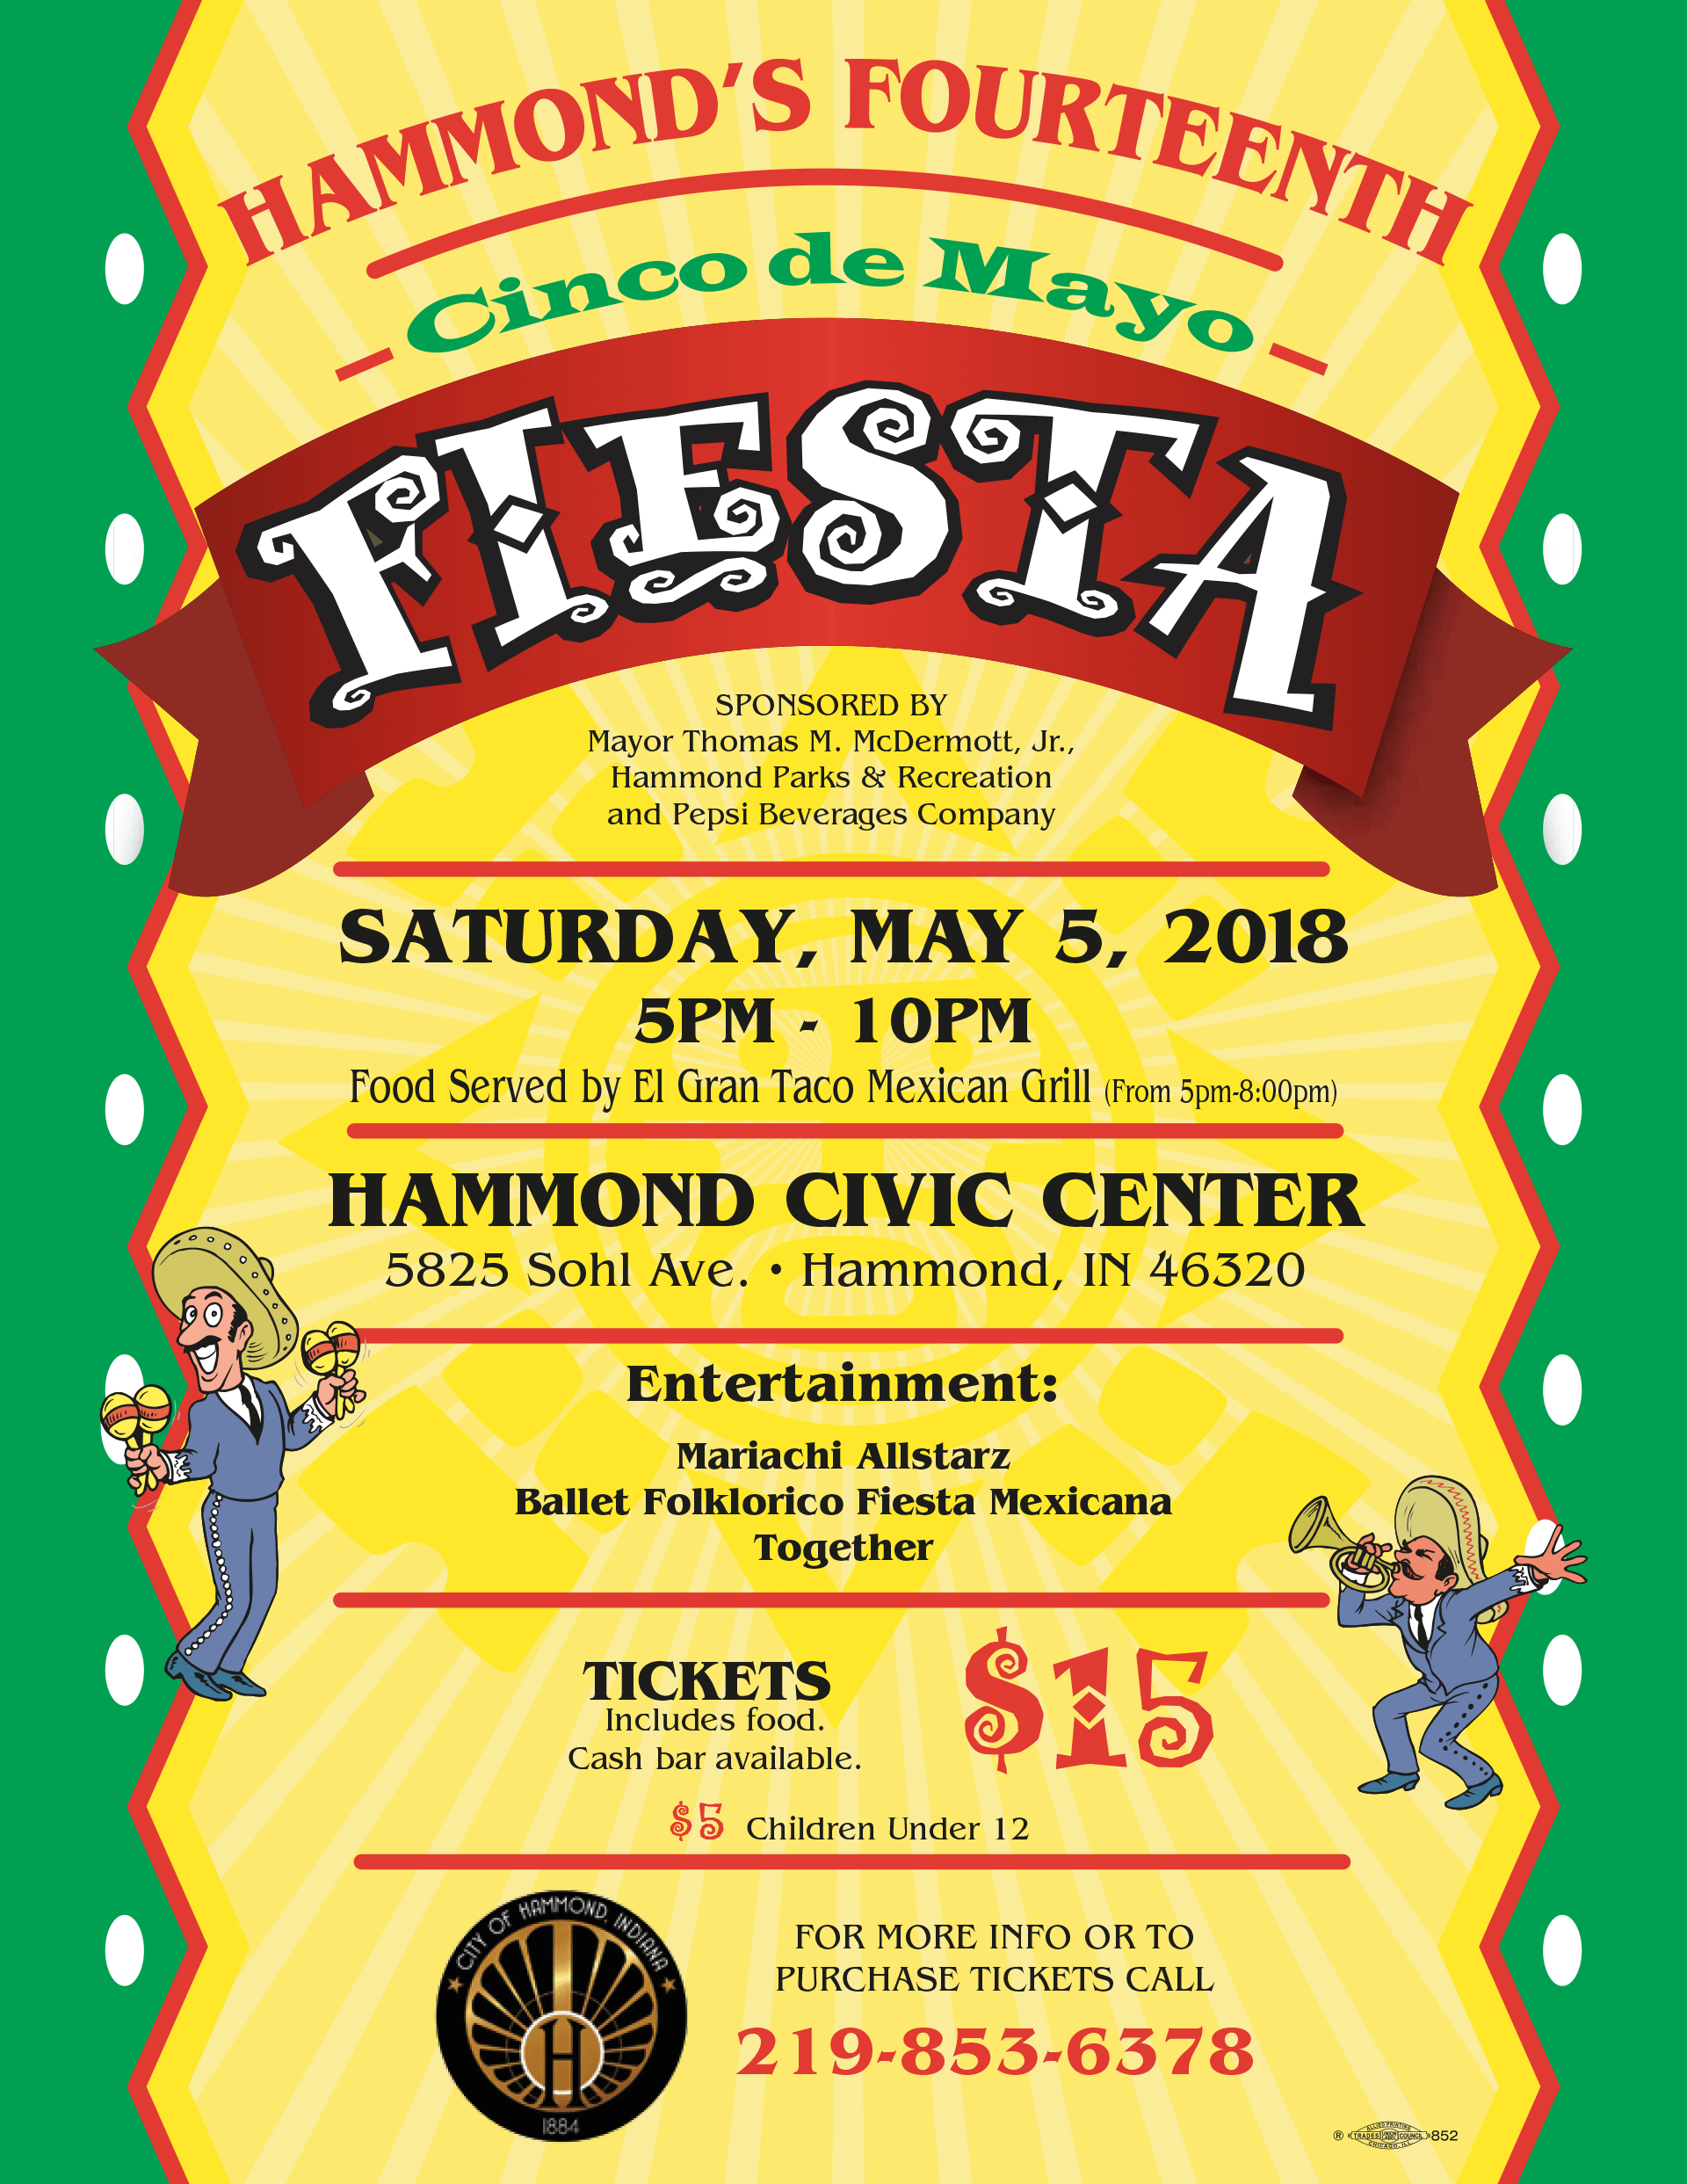 Hammond's 14th Annual Cinco de Mayo Celebration